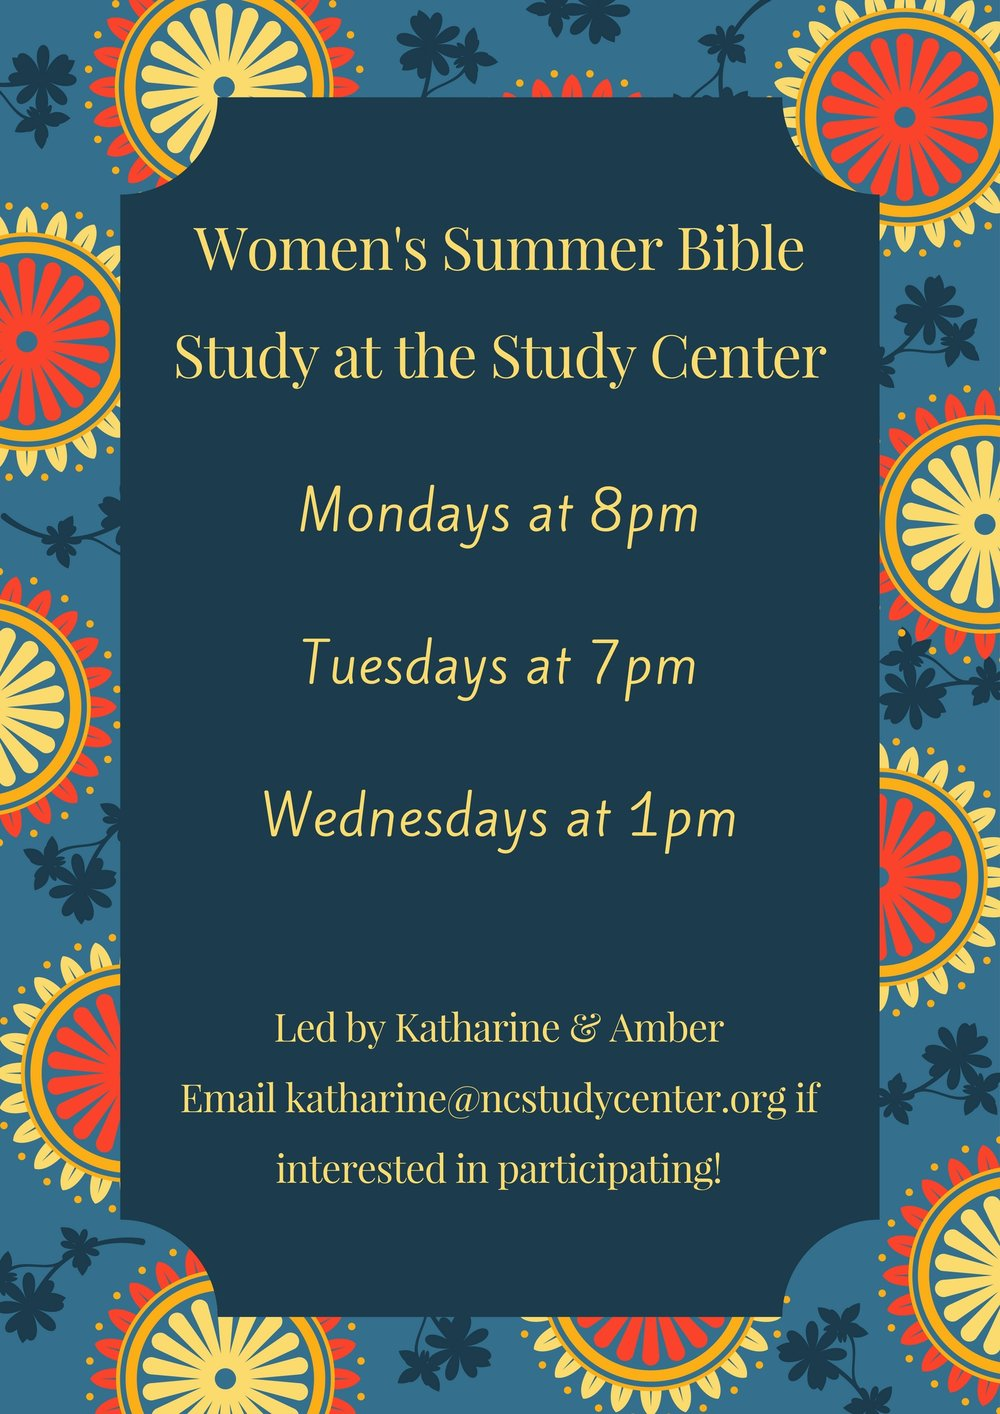 WOmen's+Summer+Bible+StudyLed+by+Katharine+and+Amber+(1).jpg